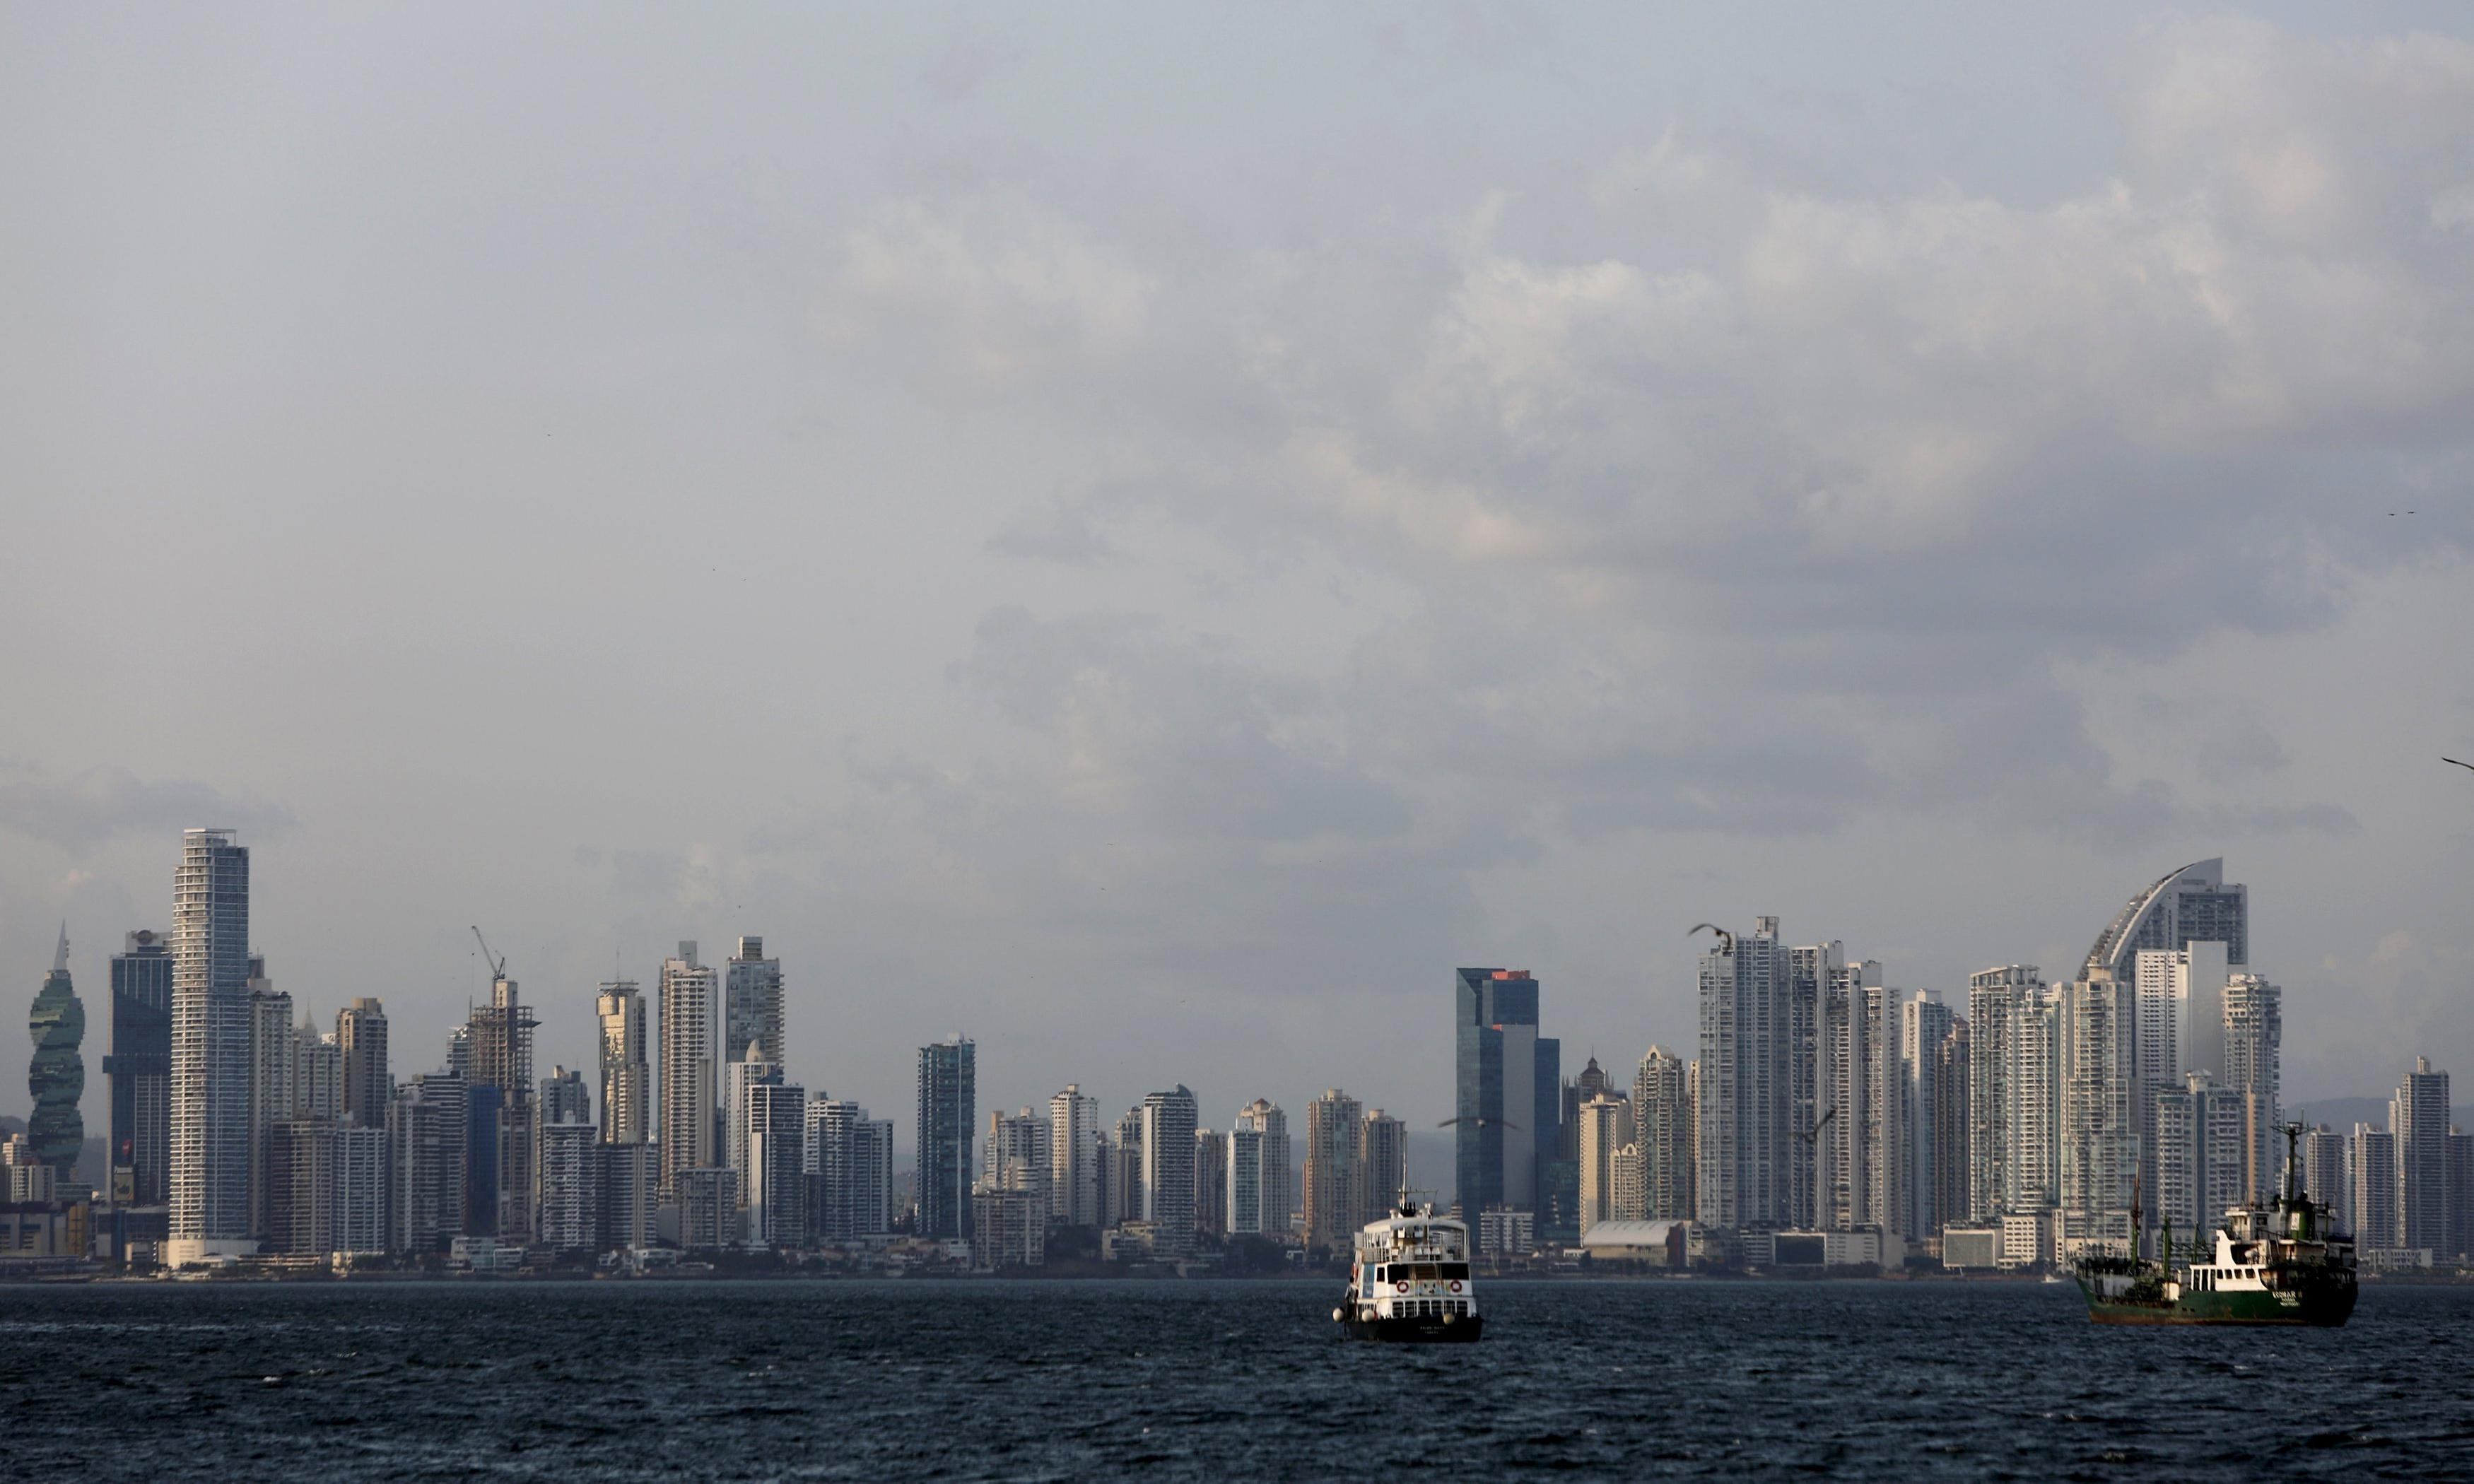 Panama Papers 'tightened the noose' on offshore assets of Maduro's inner circle